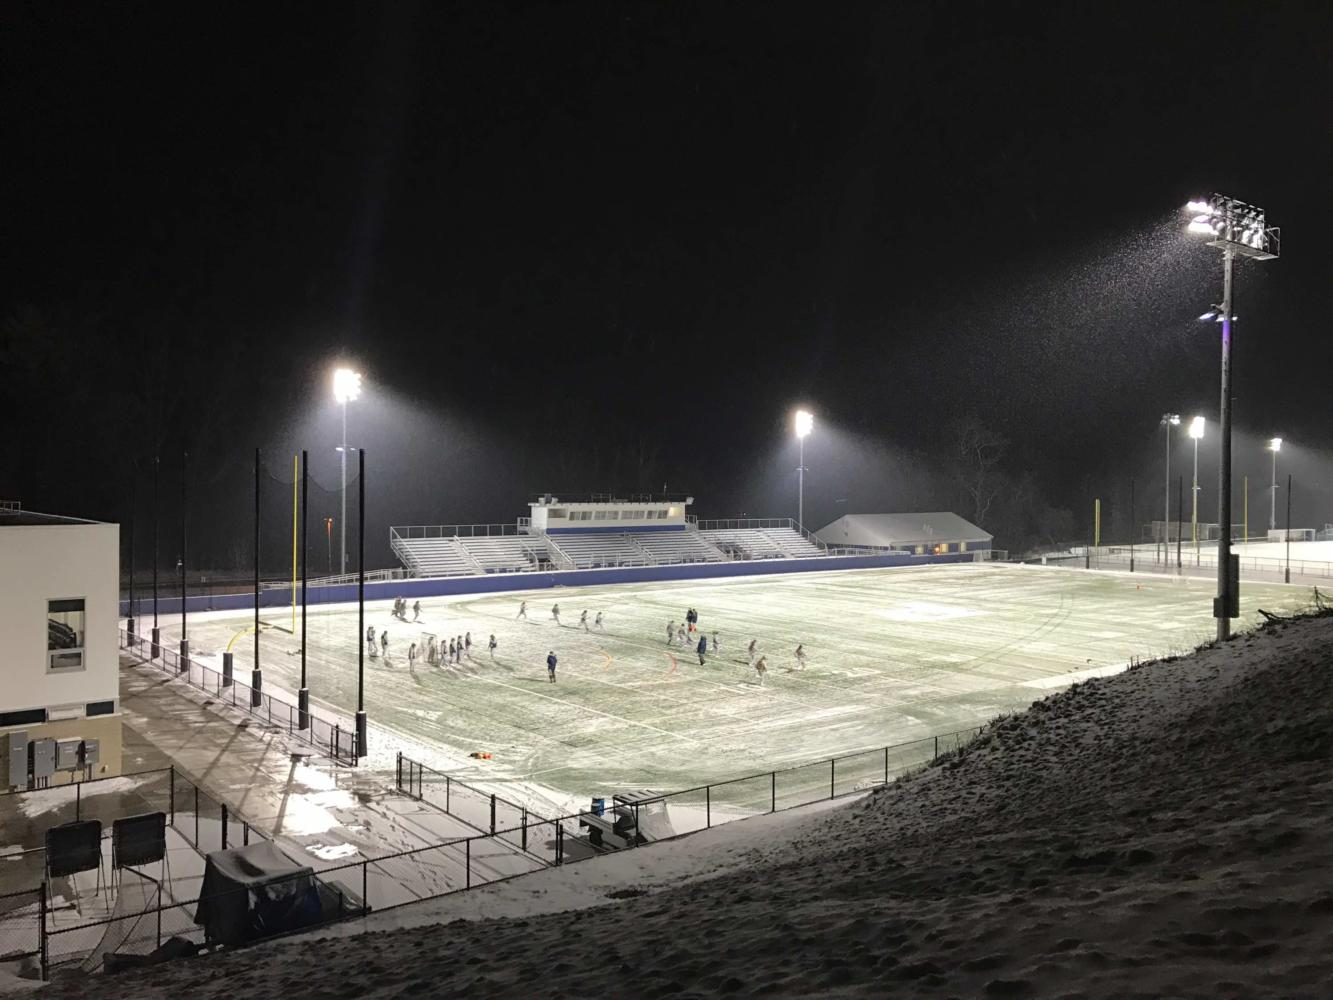 Pace's football field at night. Photo by Joseph Tucci